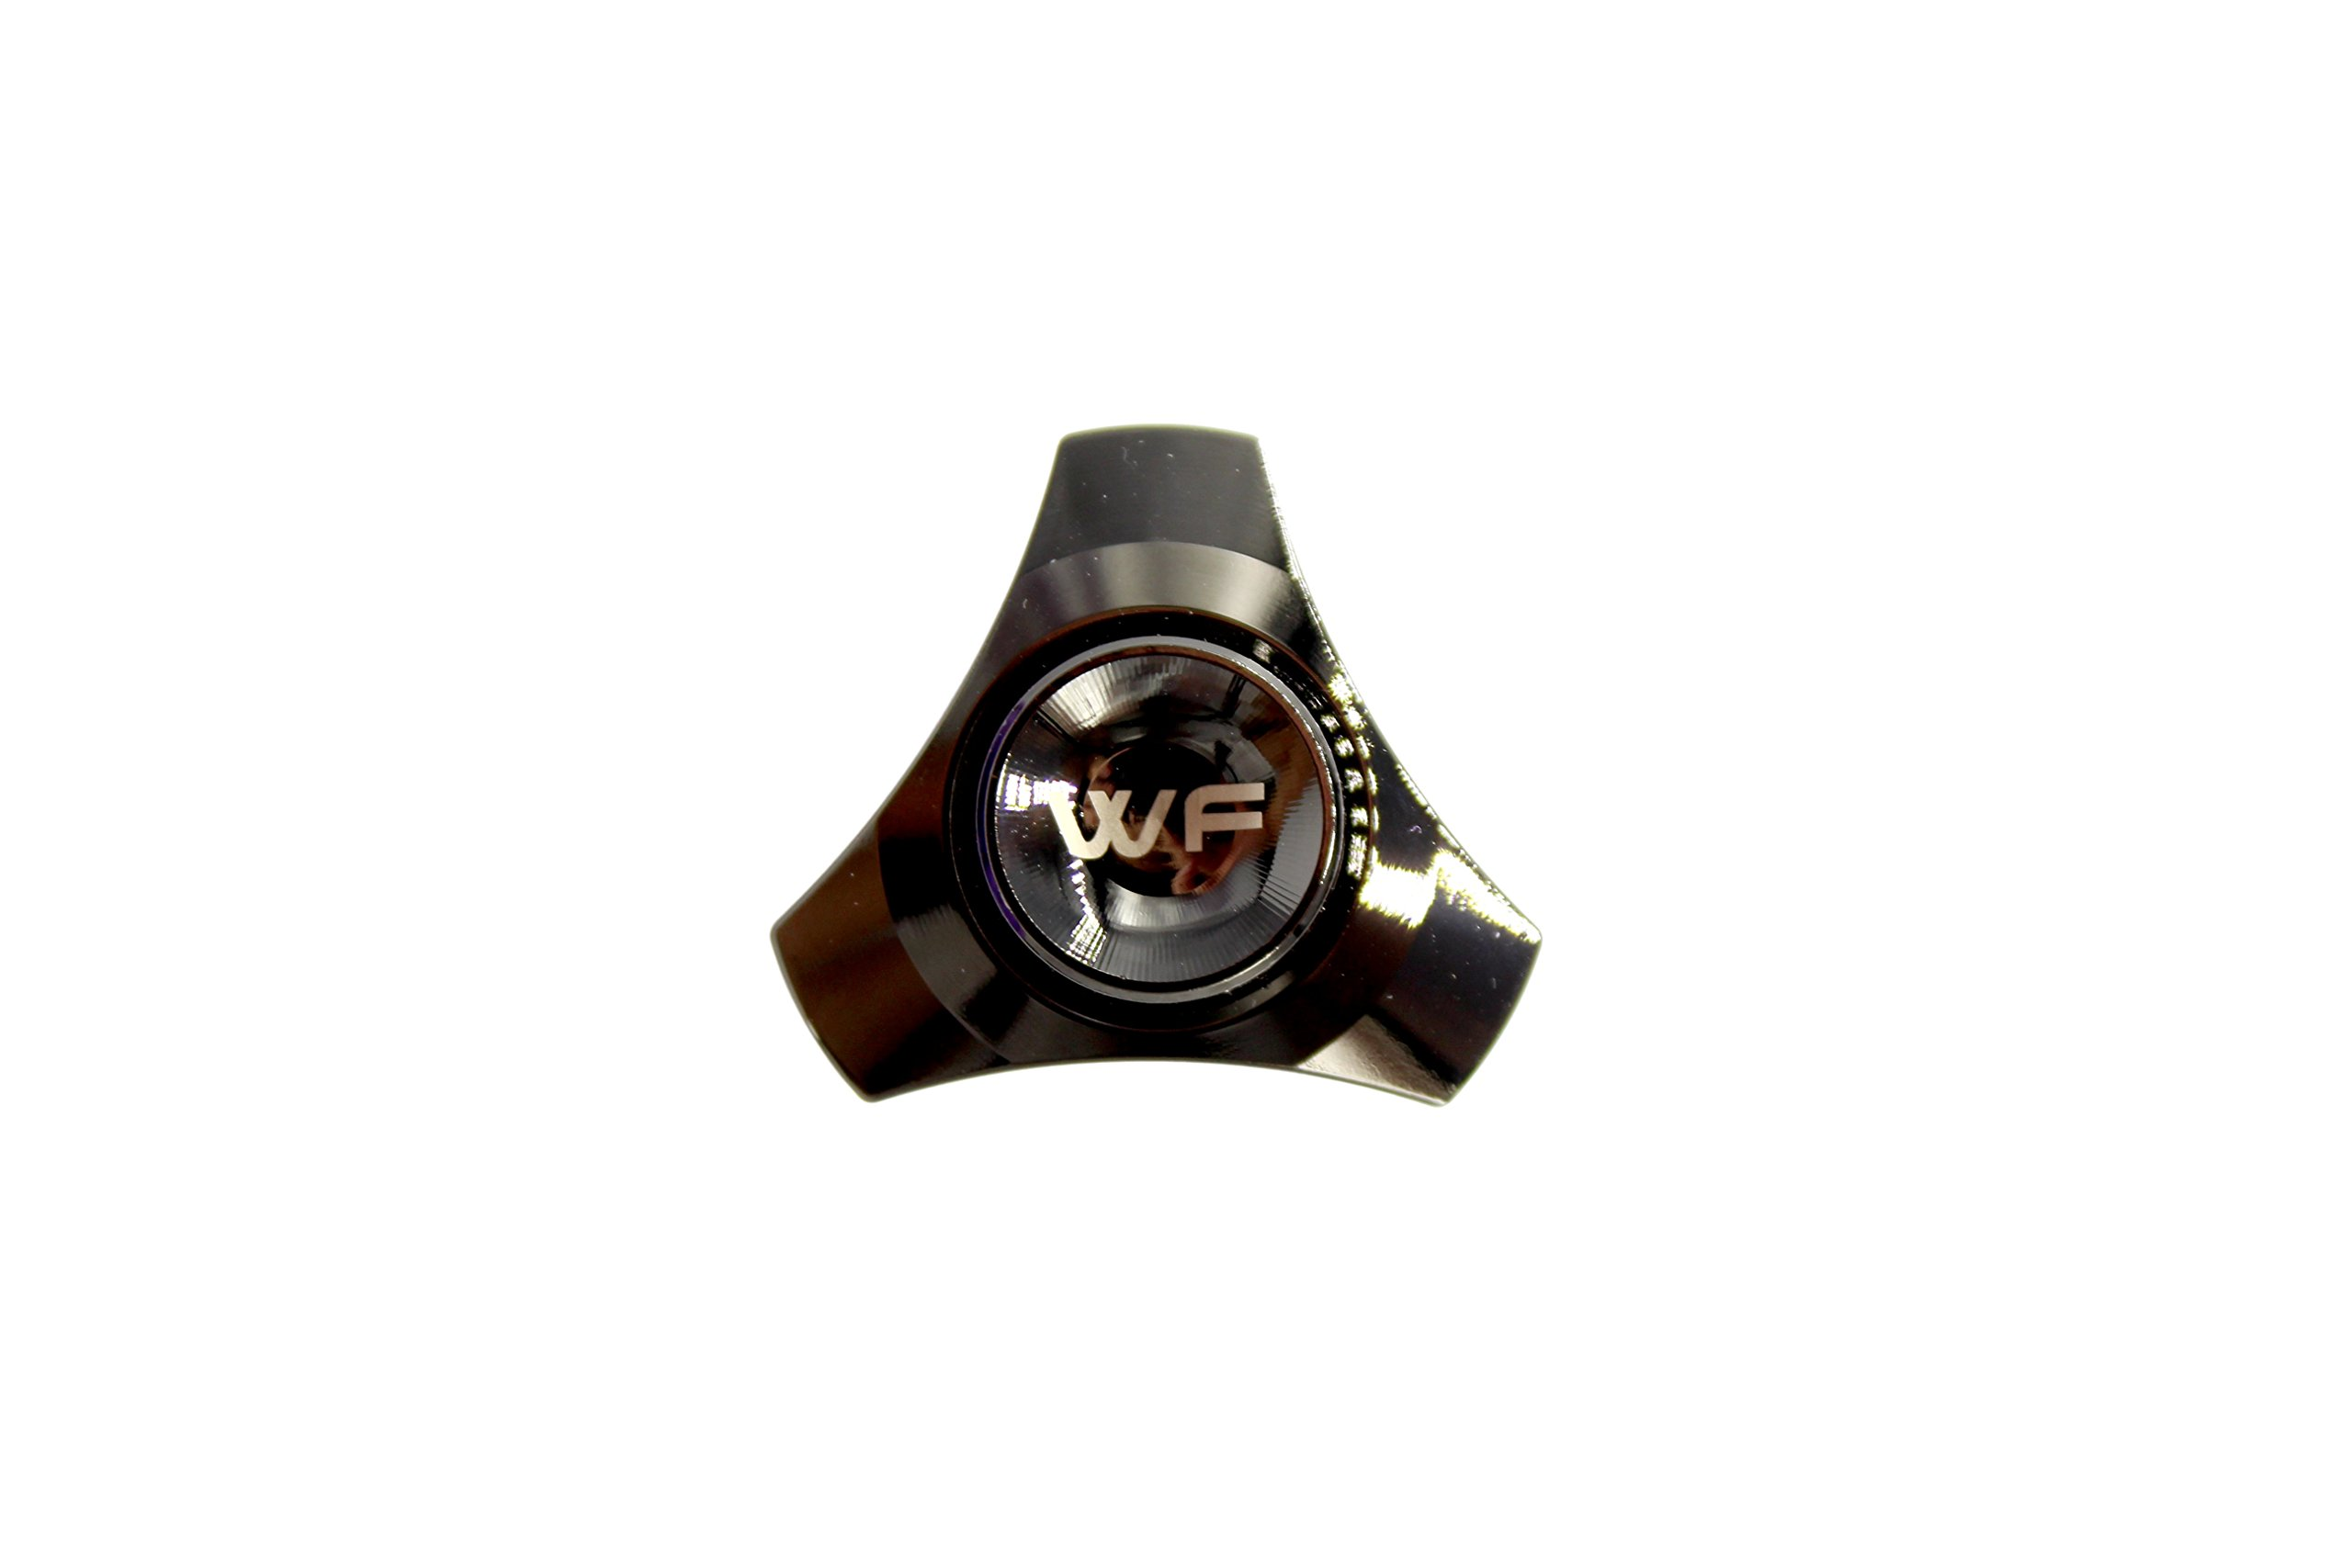 WeFidget ELECTROPLATED Mini Hand Spinner Designs, Insane Spin Times, Super Discrete, Premium Finishes, Replaceable Bearings, Travel Case Included, Obsidian Black by WeFidget